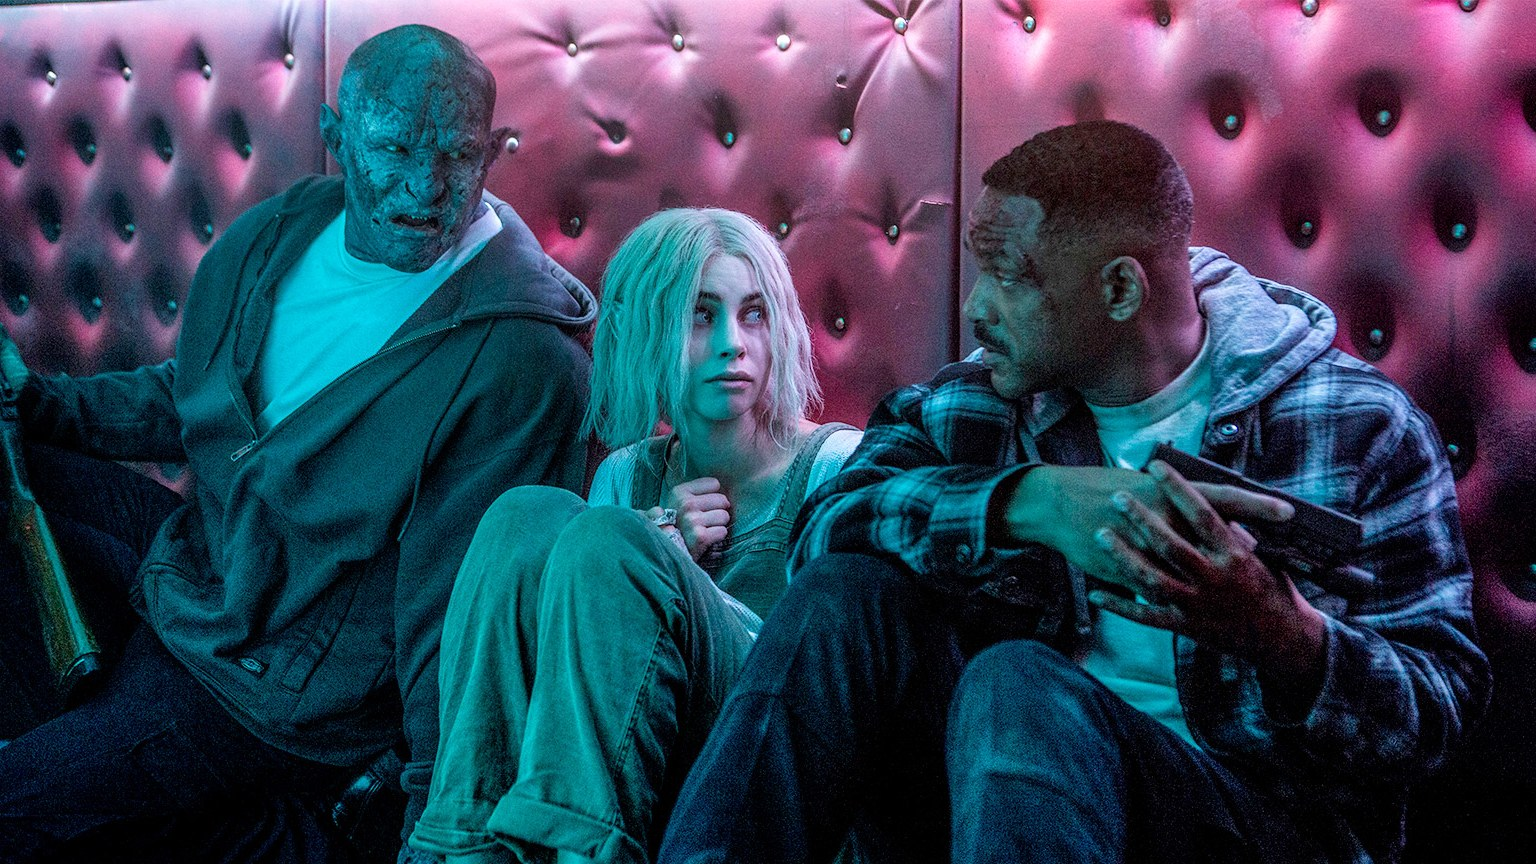 Where 'Bright' shines is not the movie itself